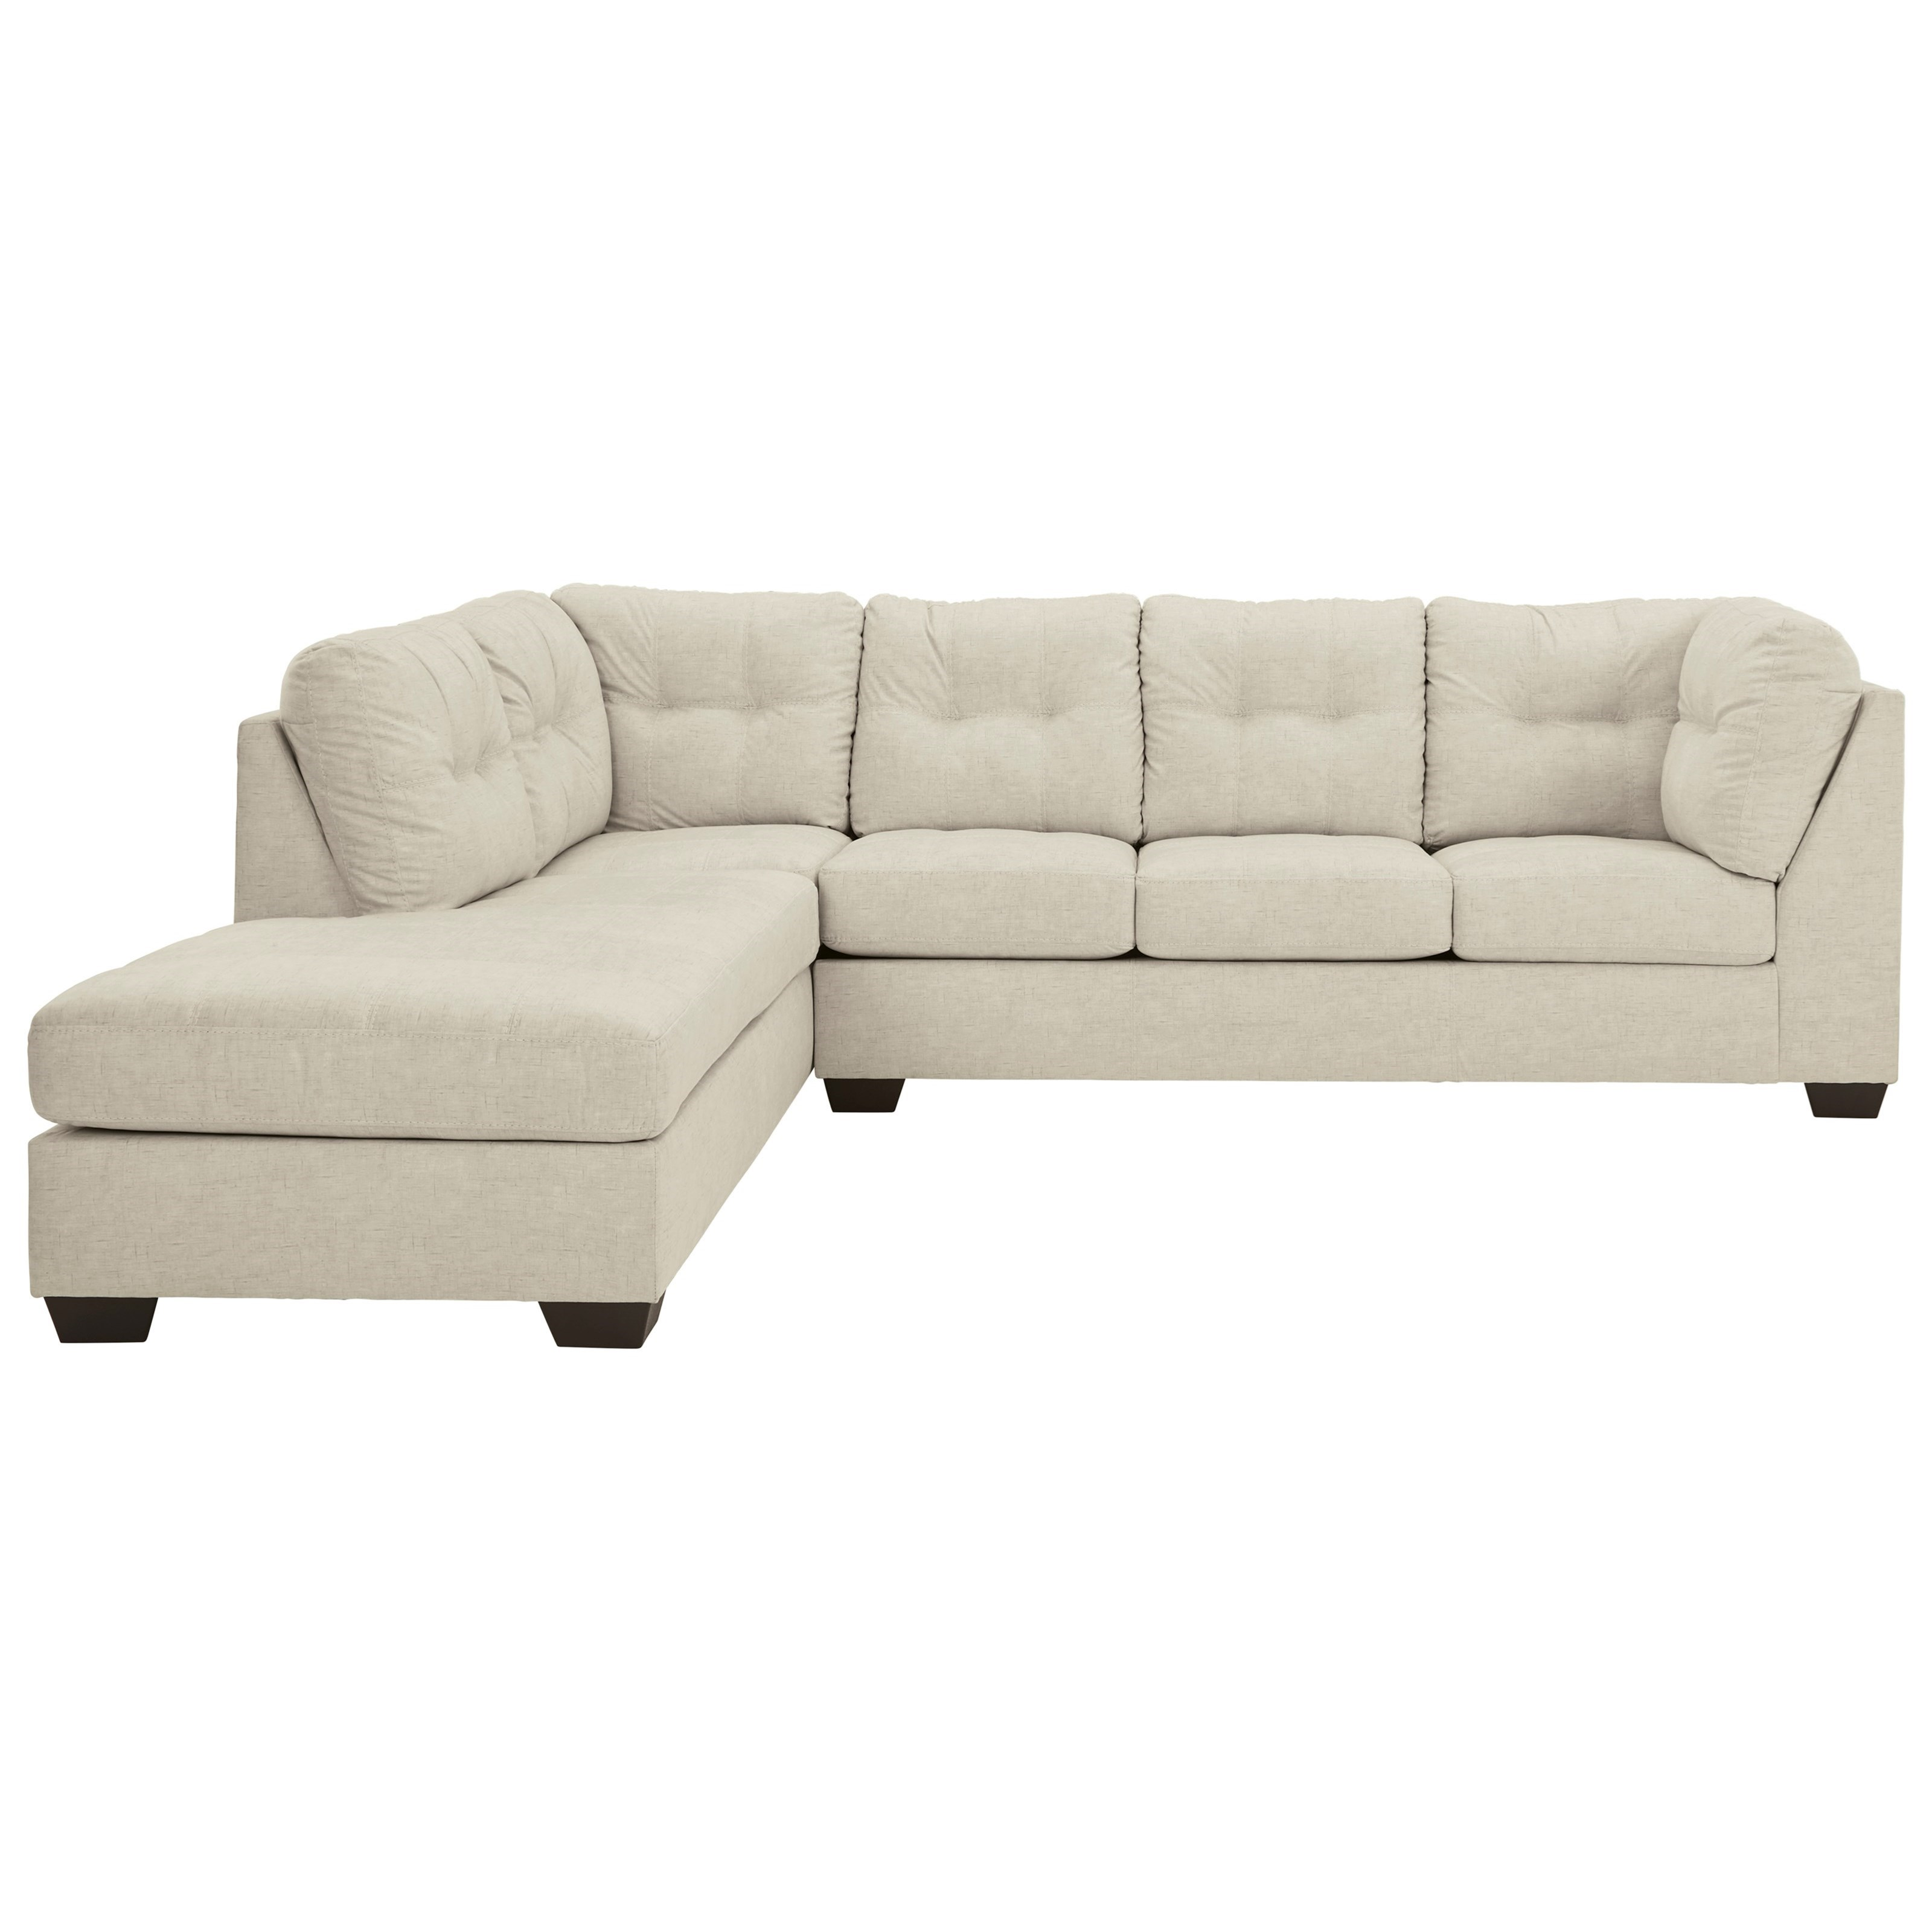 Falkirk 2-Piece Sectional with Chaise & Full Sleeper by Benchcraft at Walker's Furniture